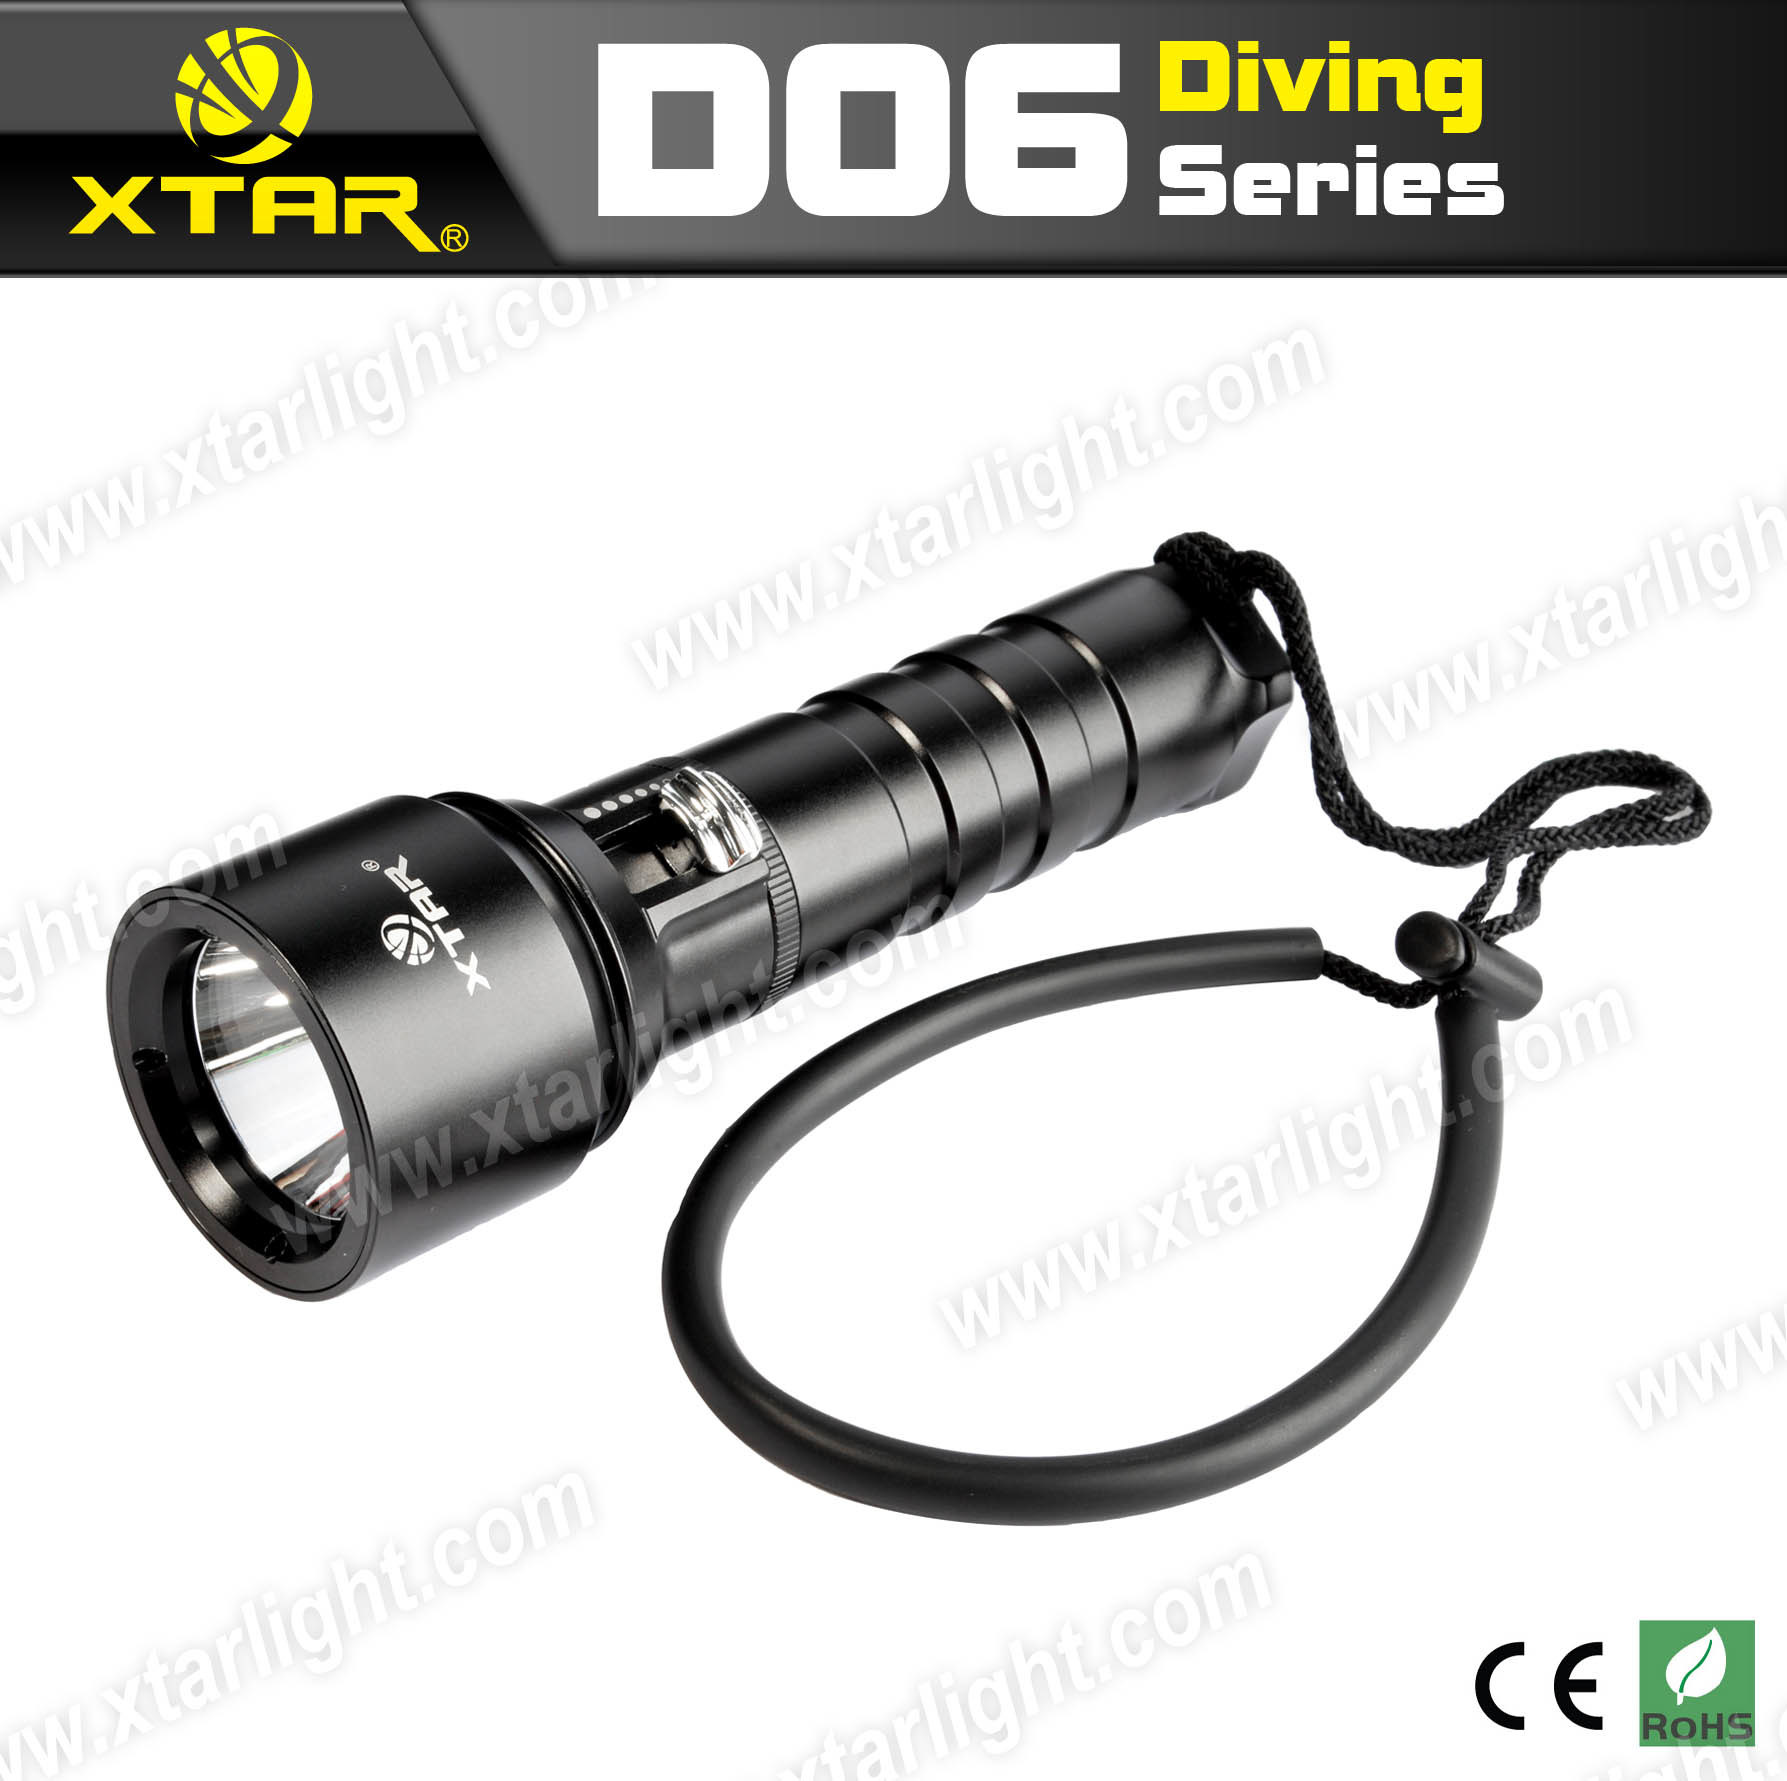 XTAR super bright 800lumens Scuba Dive Light D06 U2